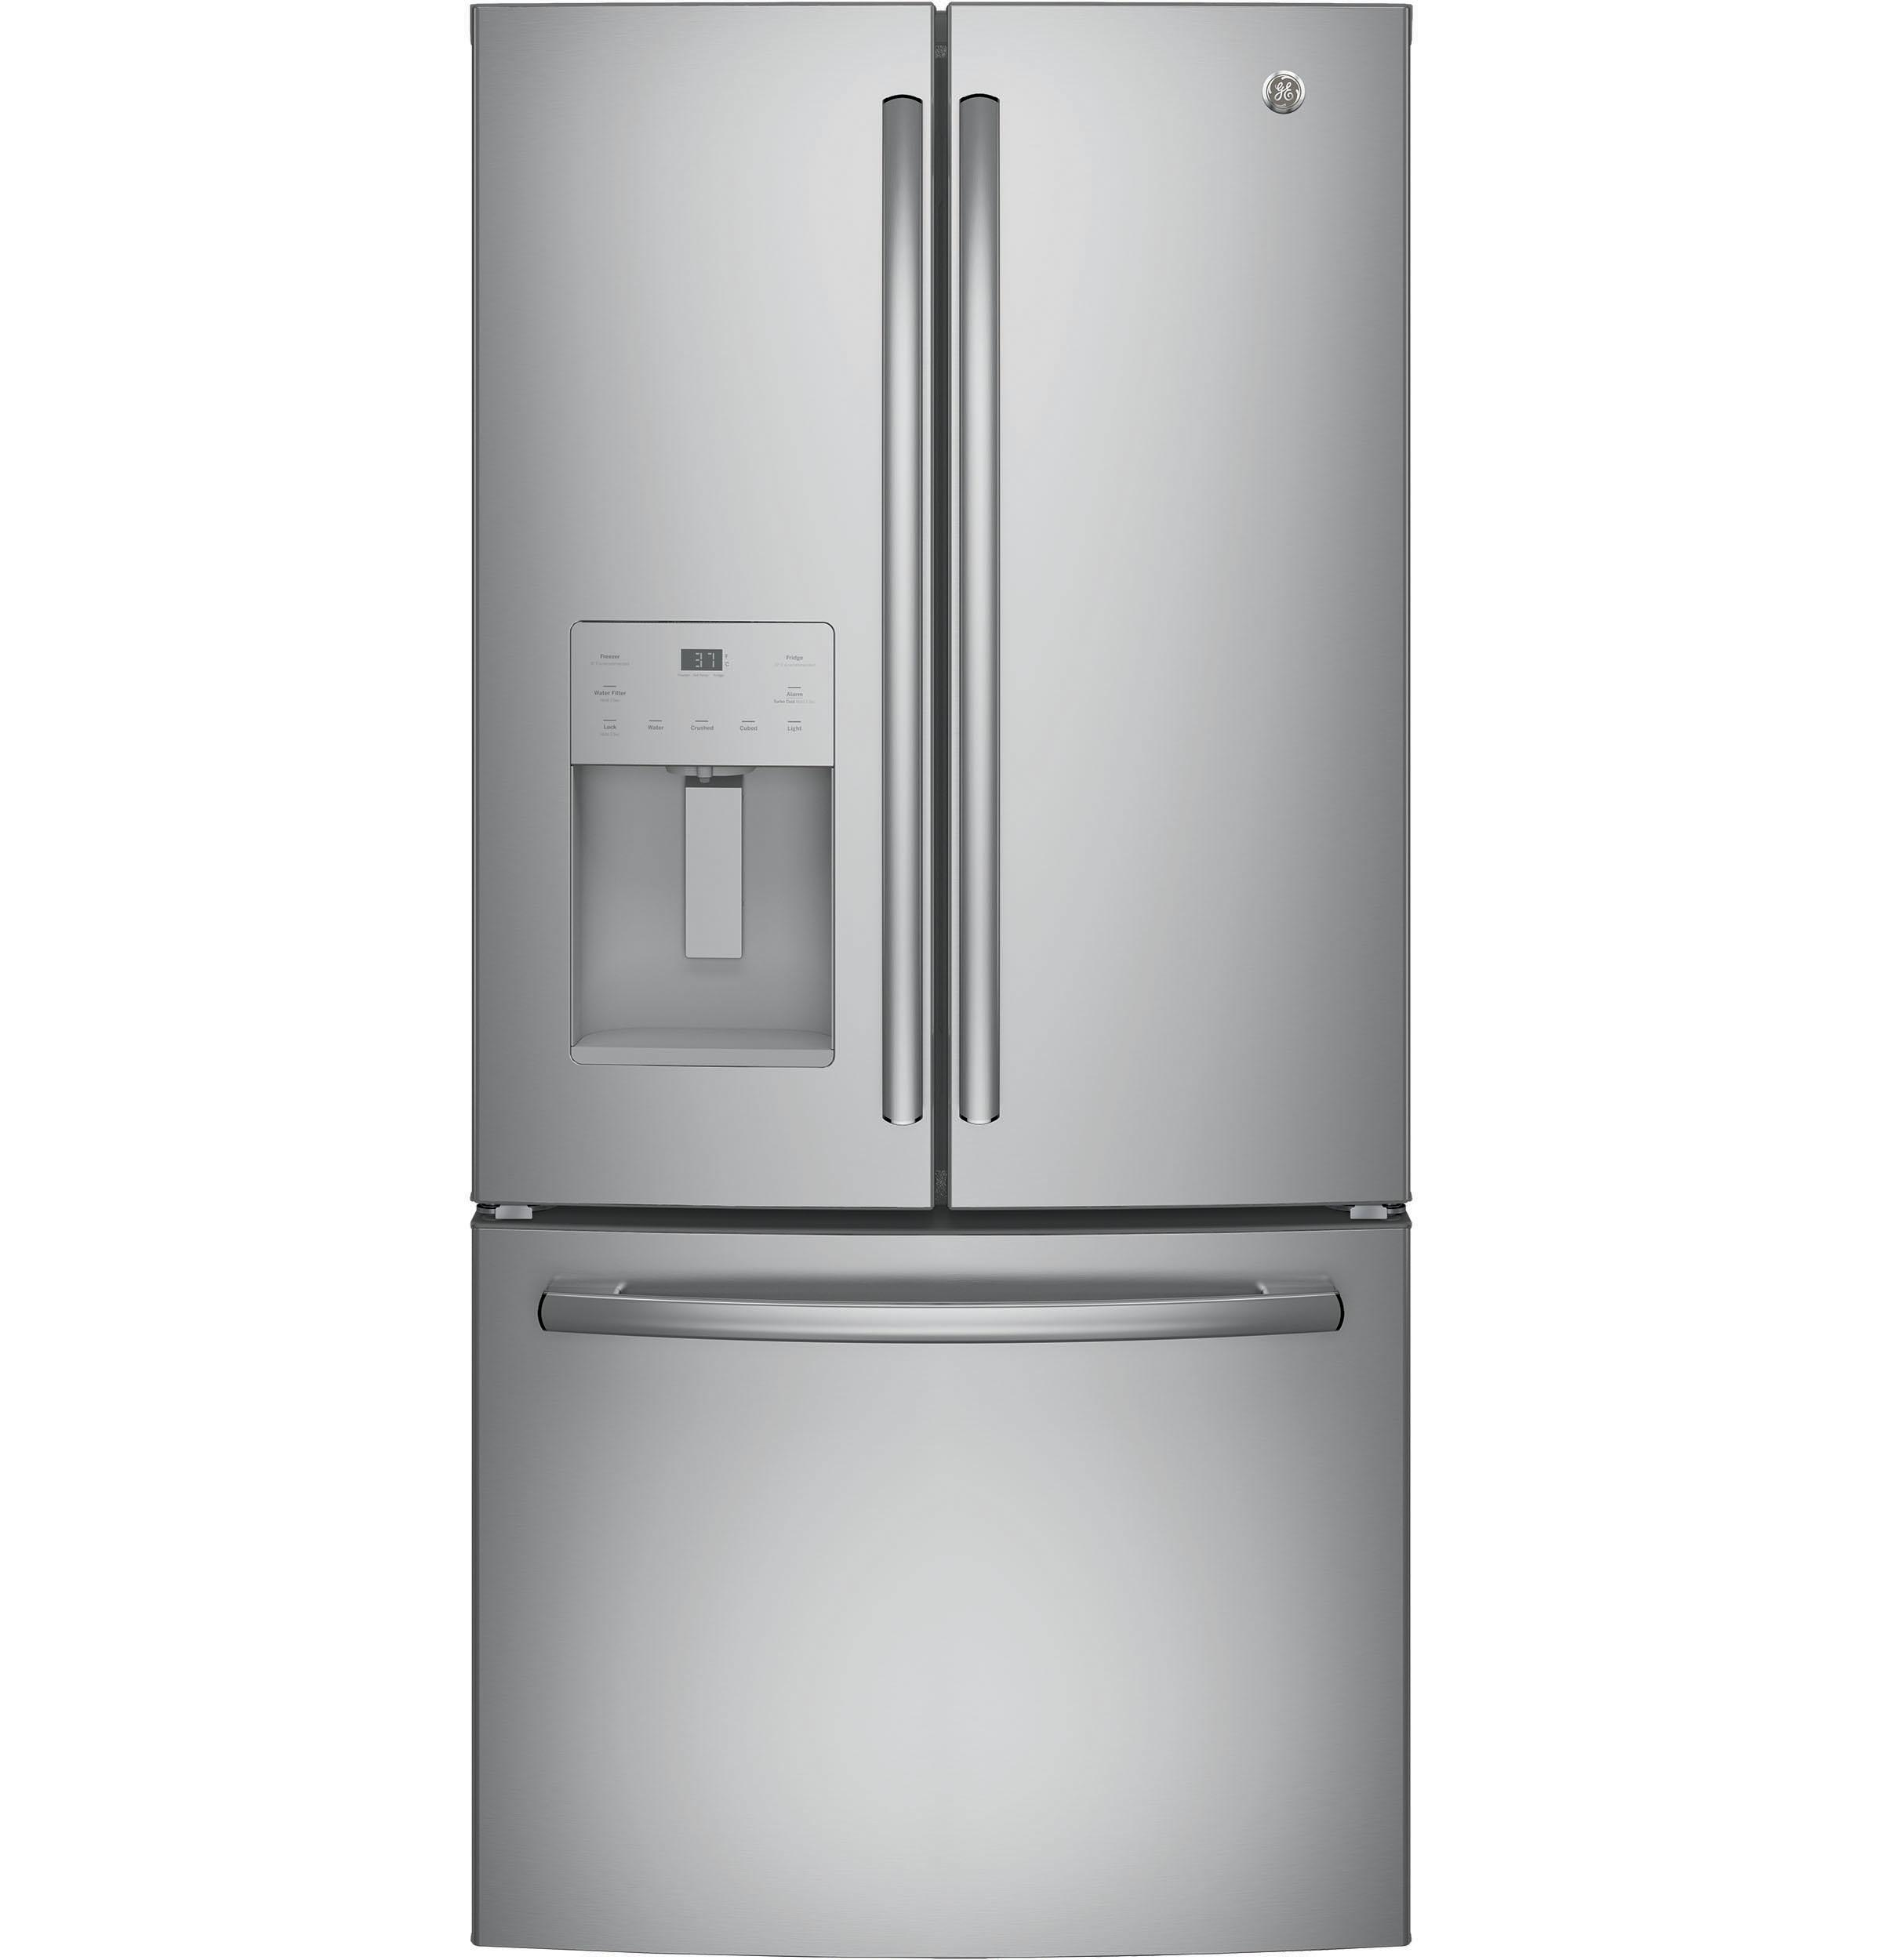 GE(R) ENERGY STAR(R) 17.5 Cu. Ft. Counter-Depth French-Door Refrigerator  Stainless Steel